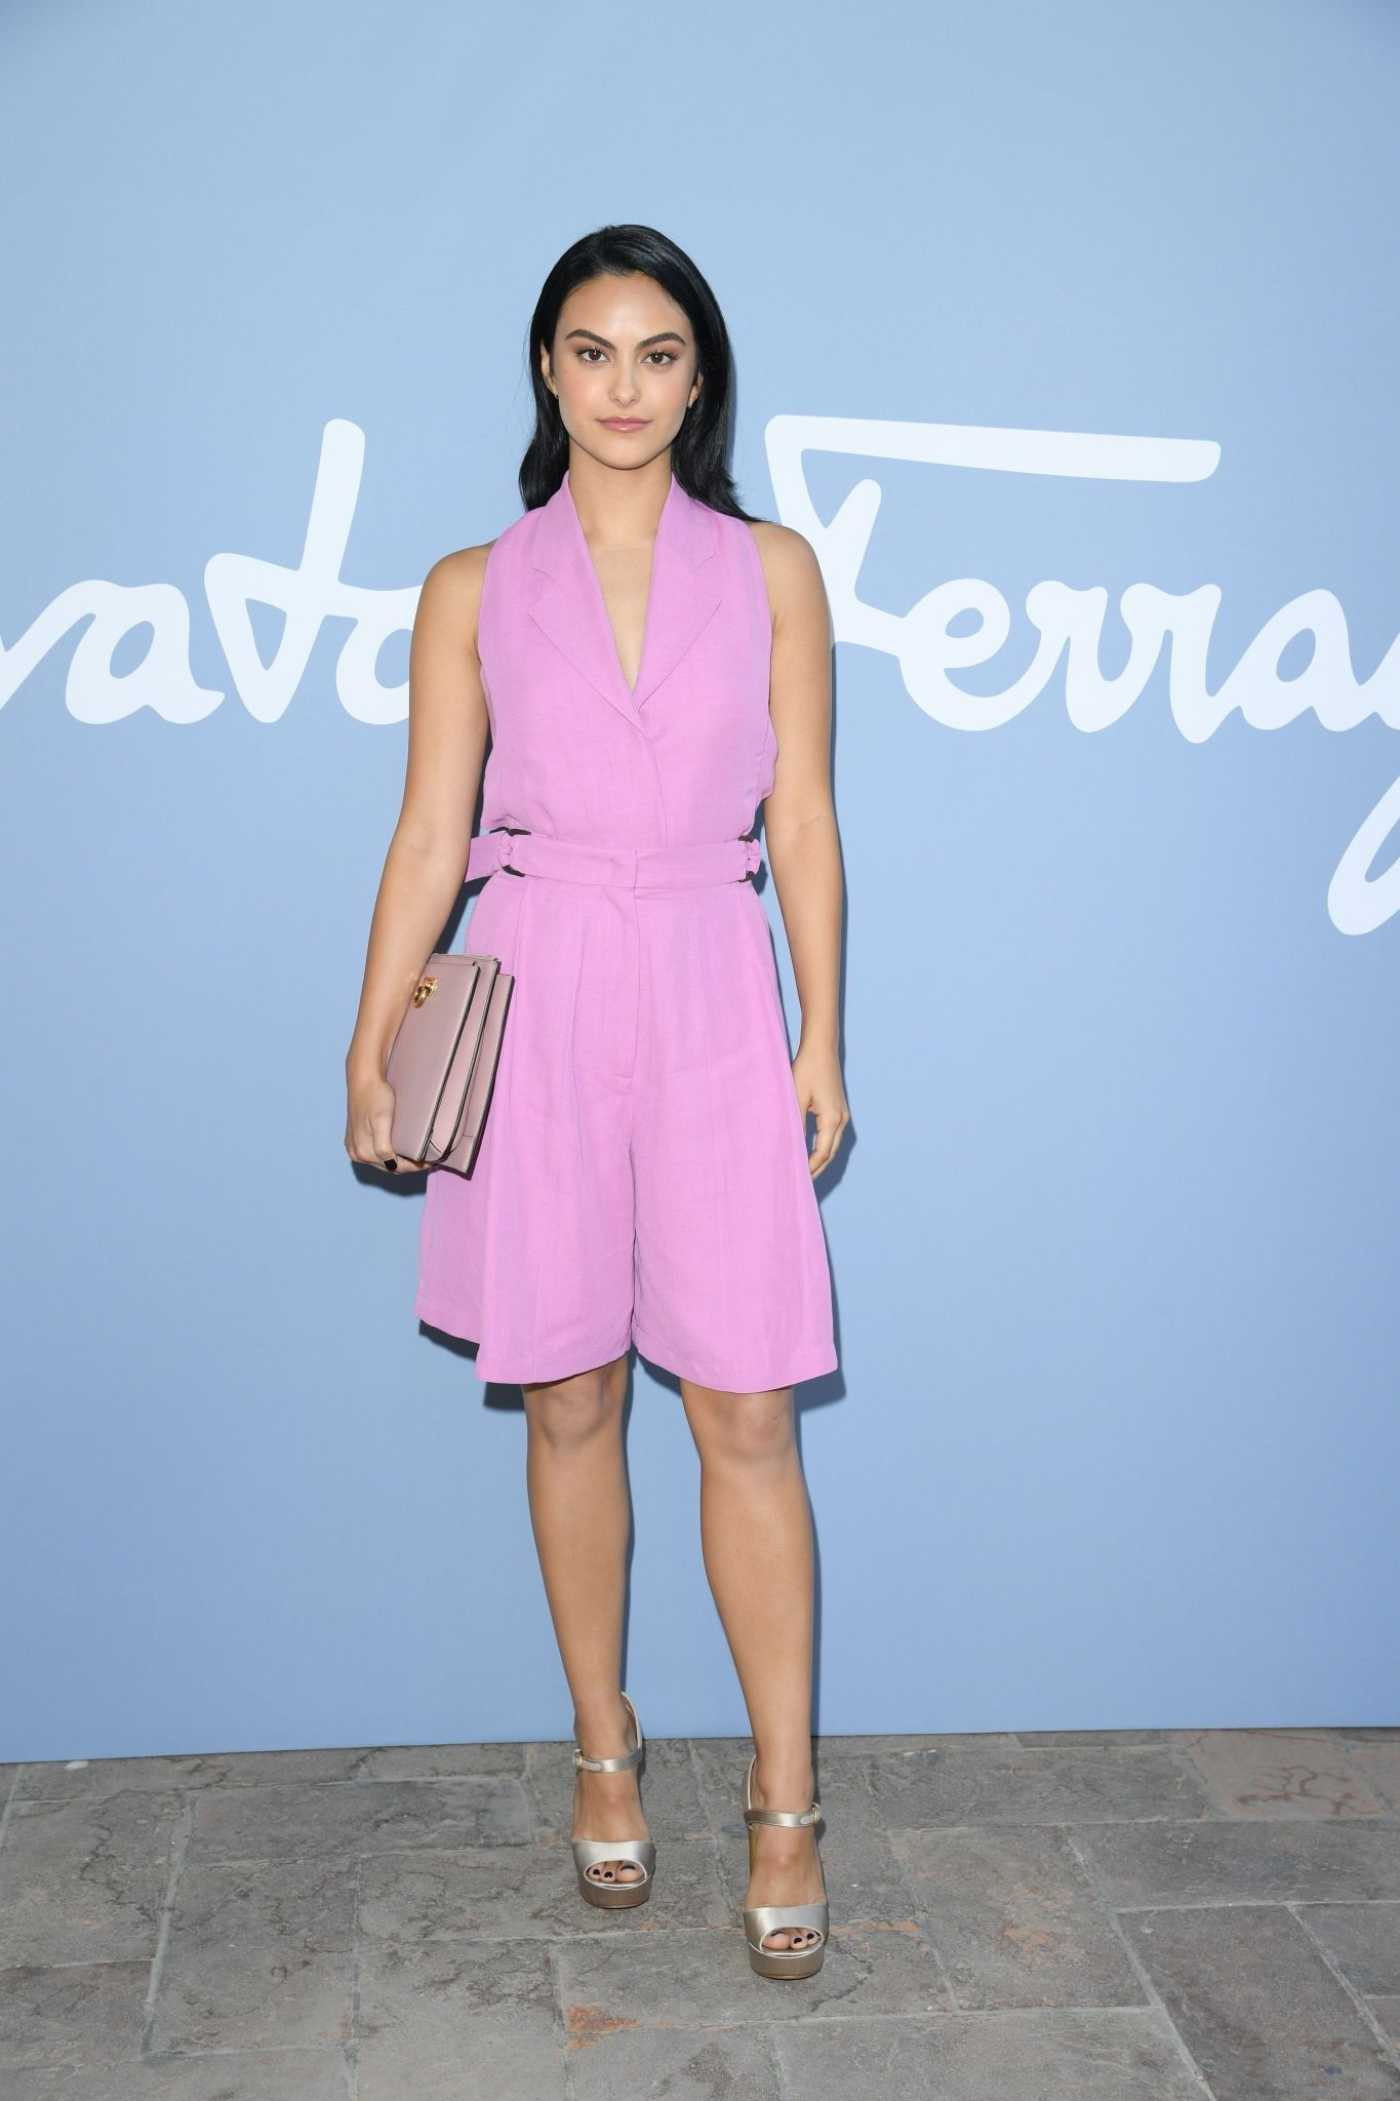 Camila Mendes Attends the Salvatore Ferragamo Show During 2019 Milan Fashion Week in Milan 09/20/2019